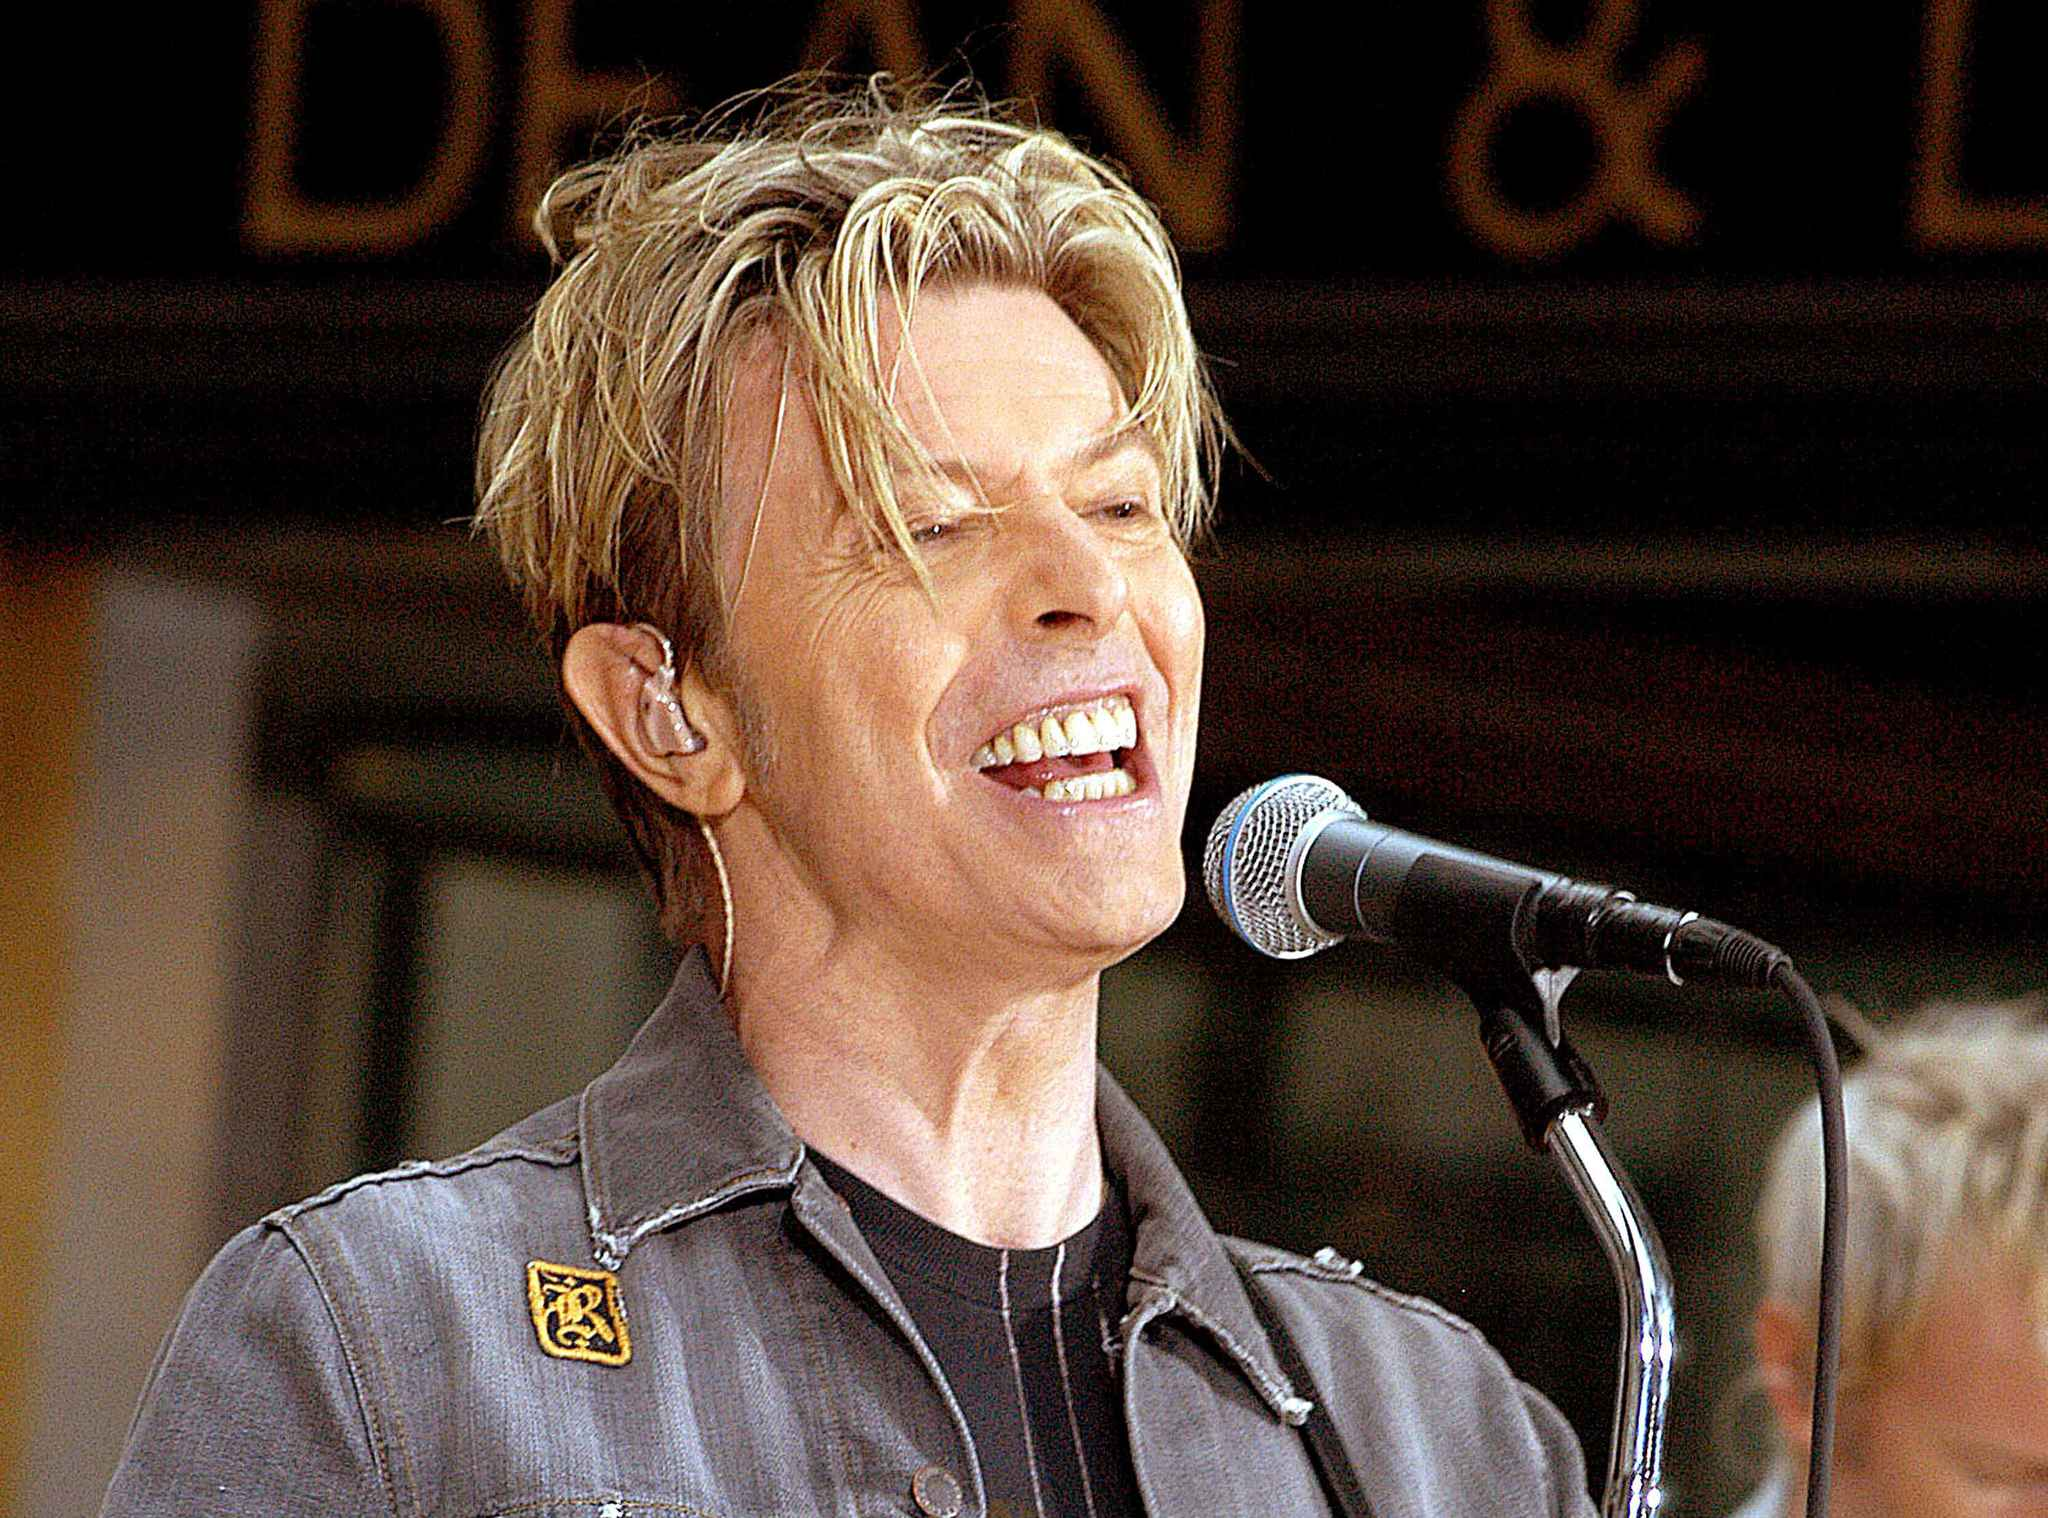 2048x1536-fit_david-bowie-2003-new-york